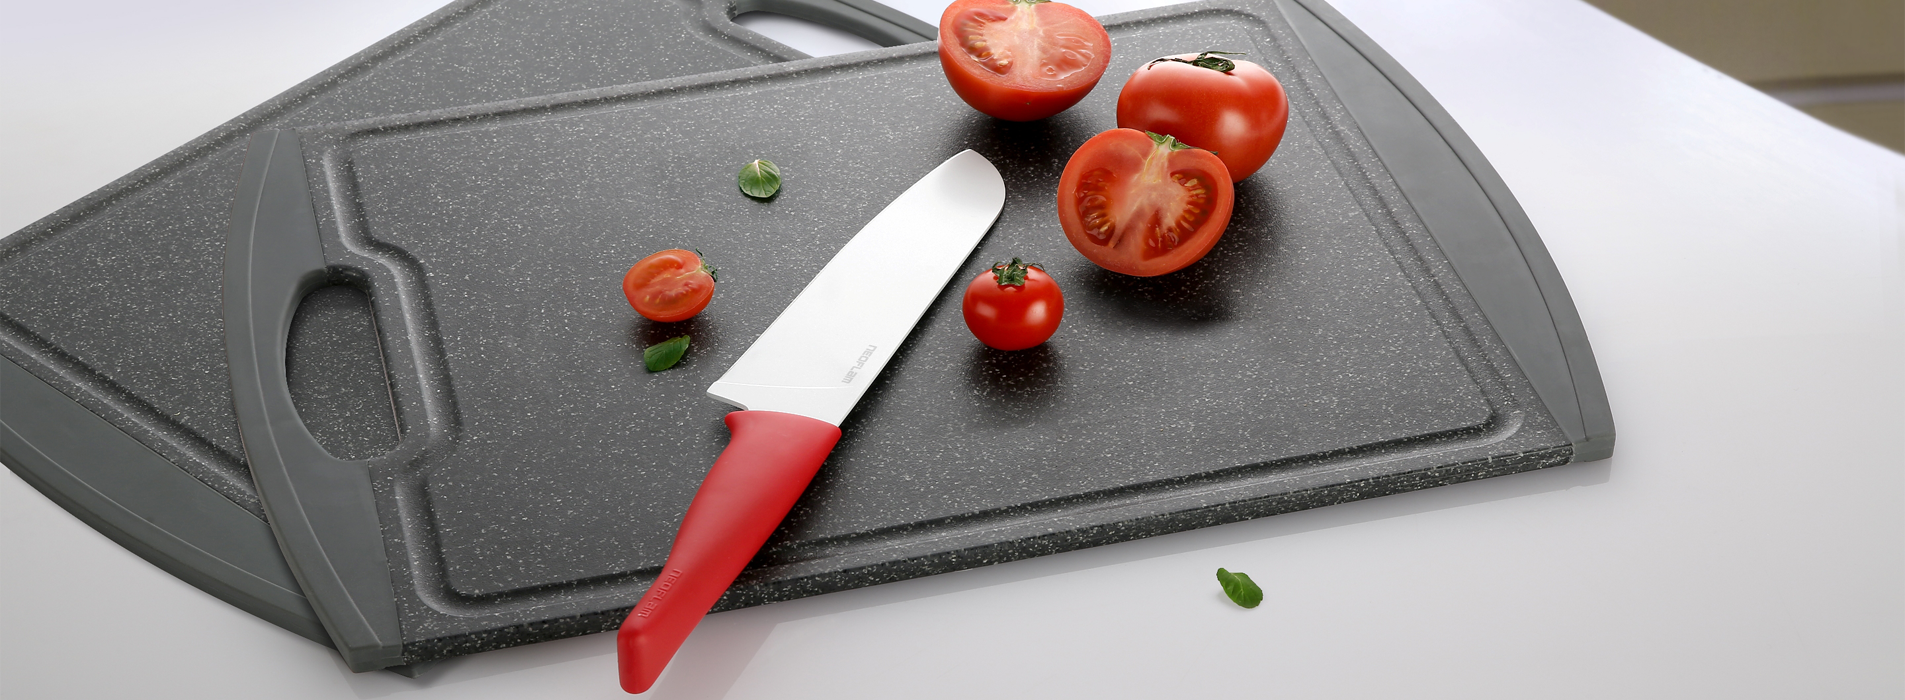 knife-and-cutting-board